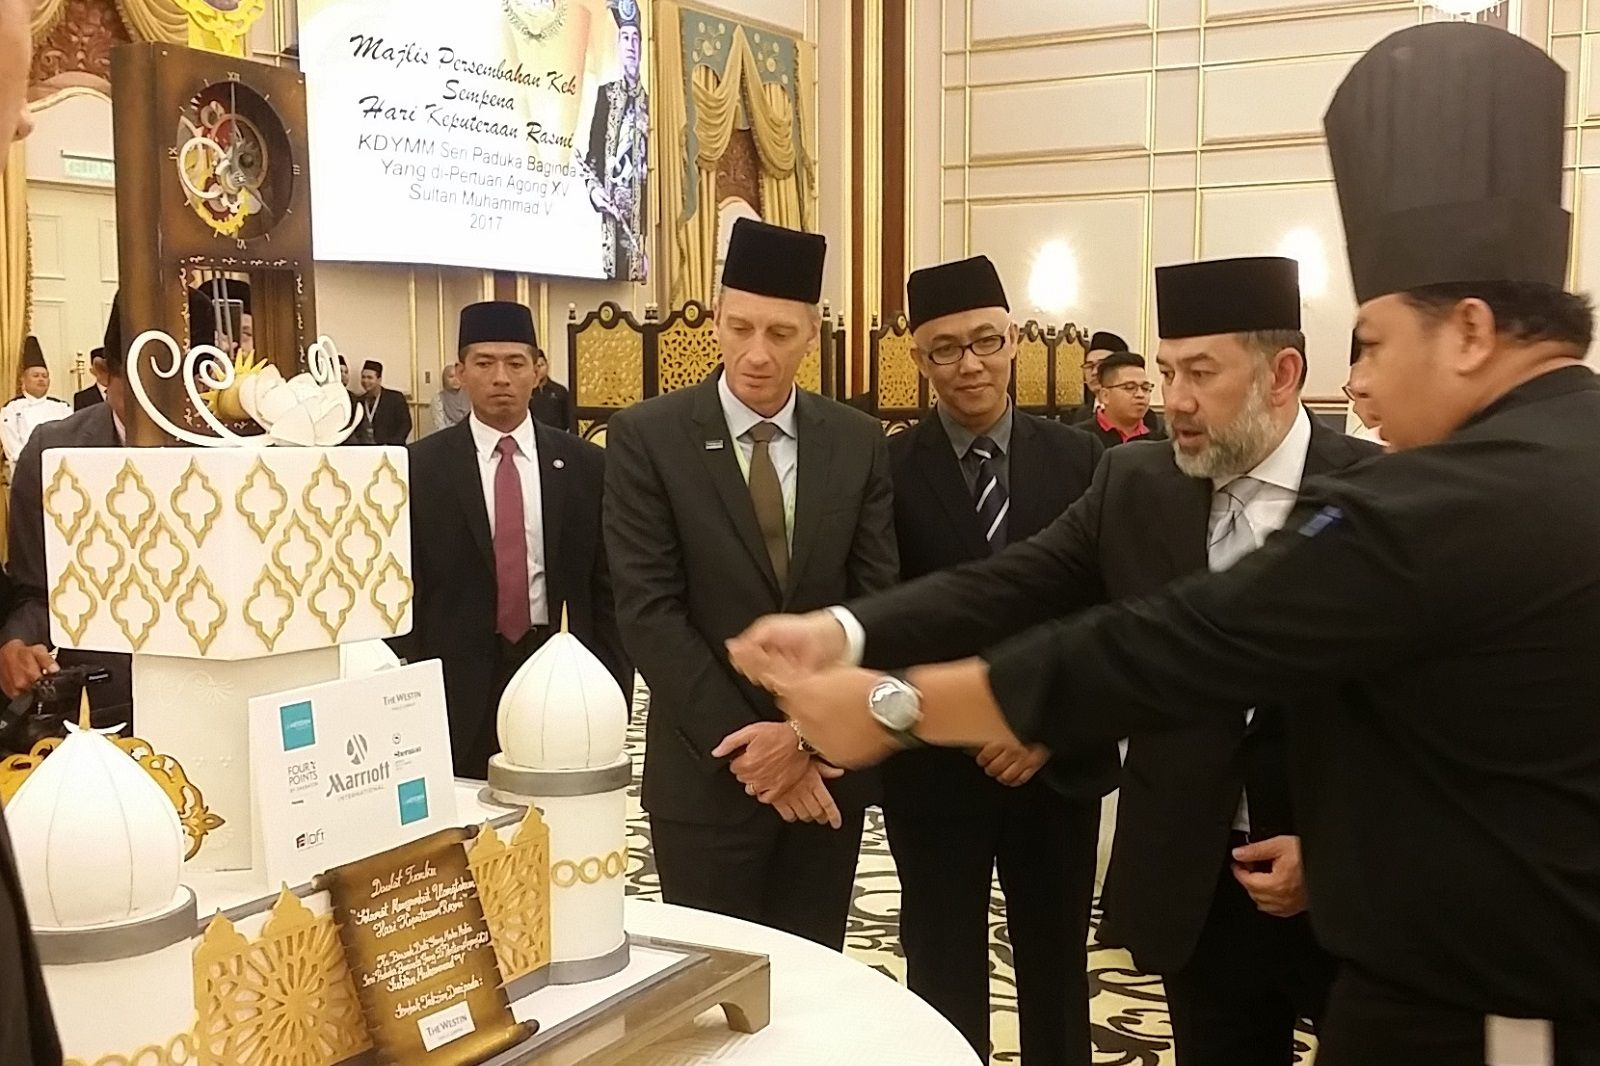 Malaysian Agong's Birthday, cake presentation ceremony